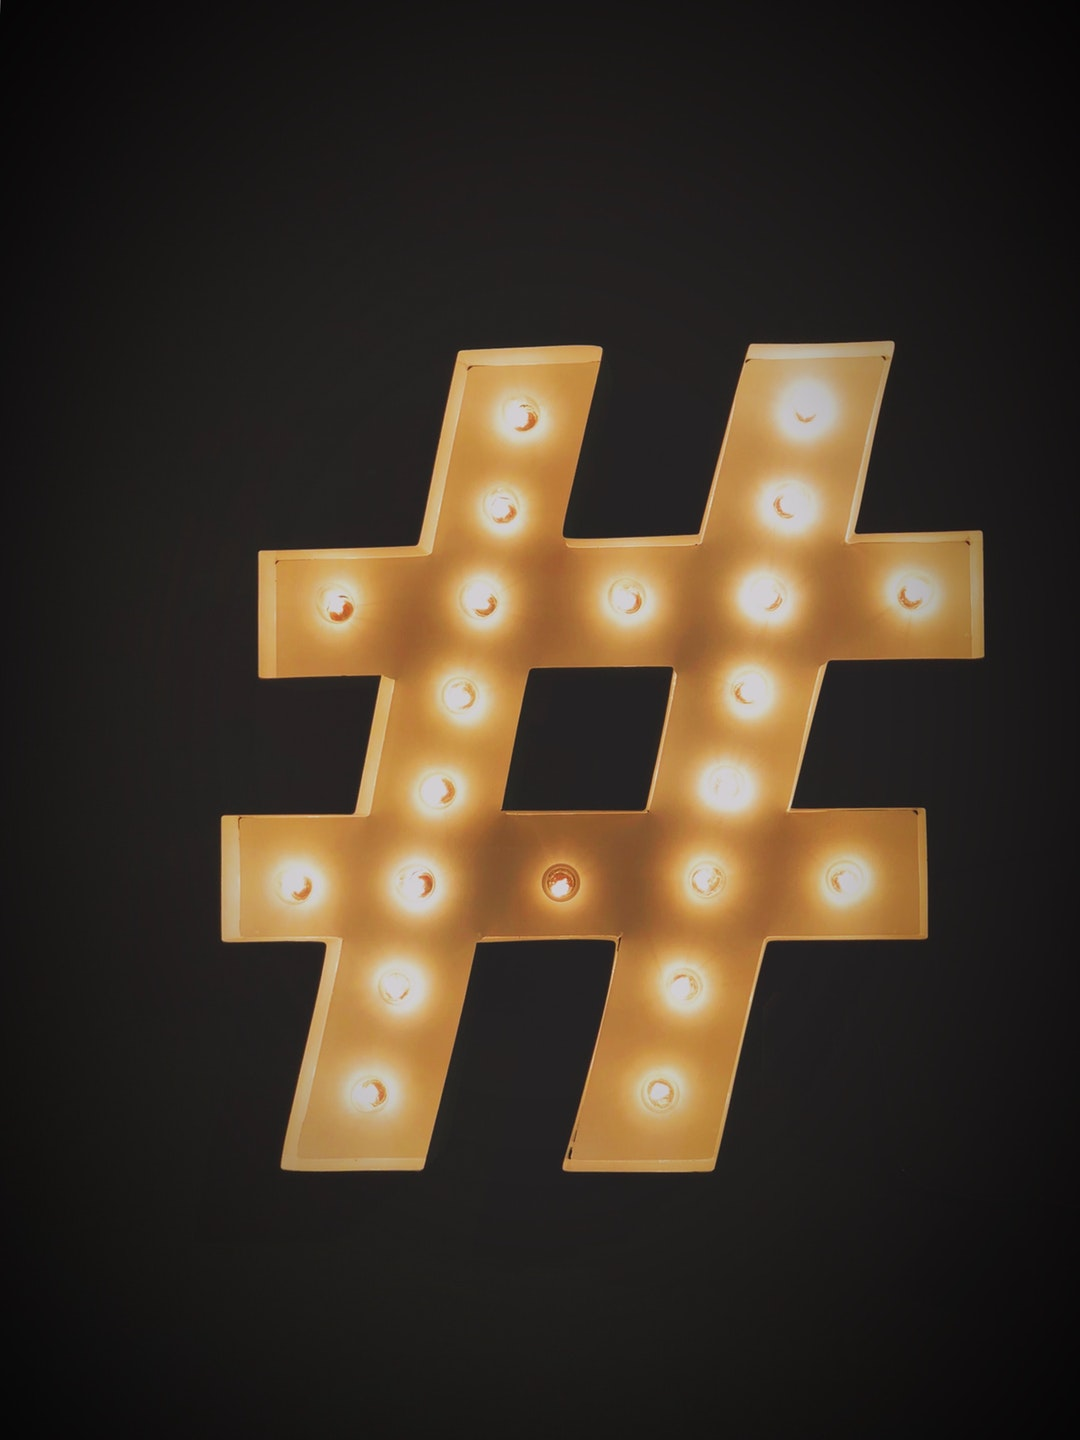 Hashtag Strategy: How to Use Instagram Hashtags for Your Restaurant